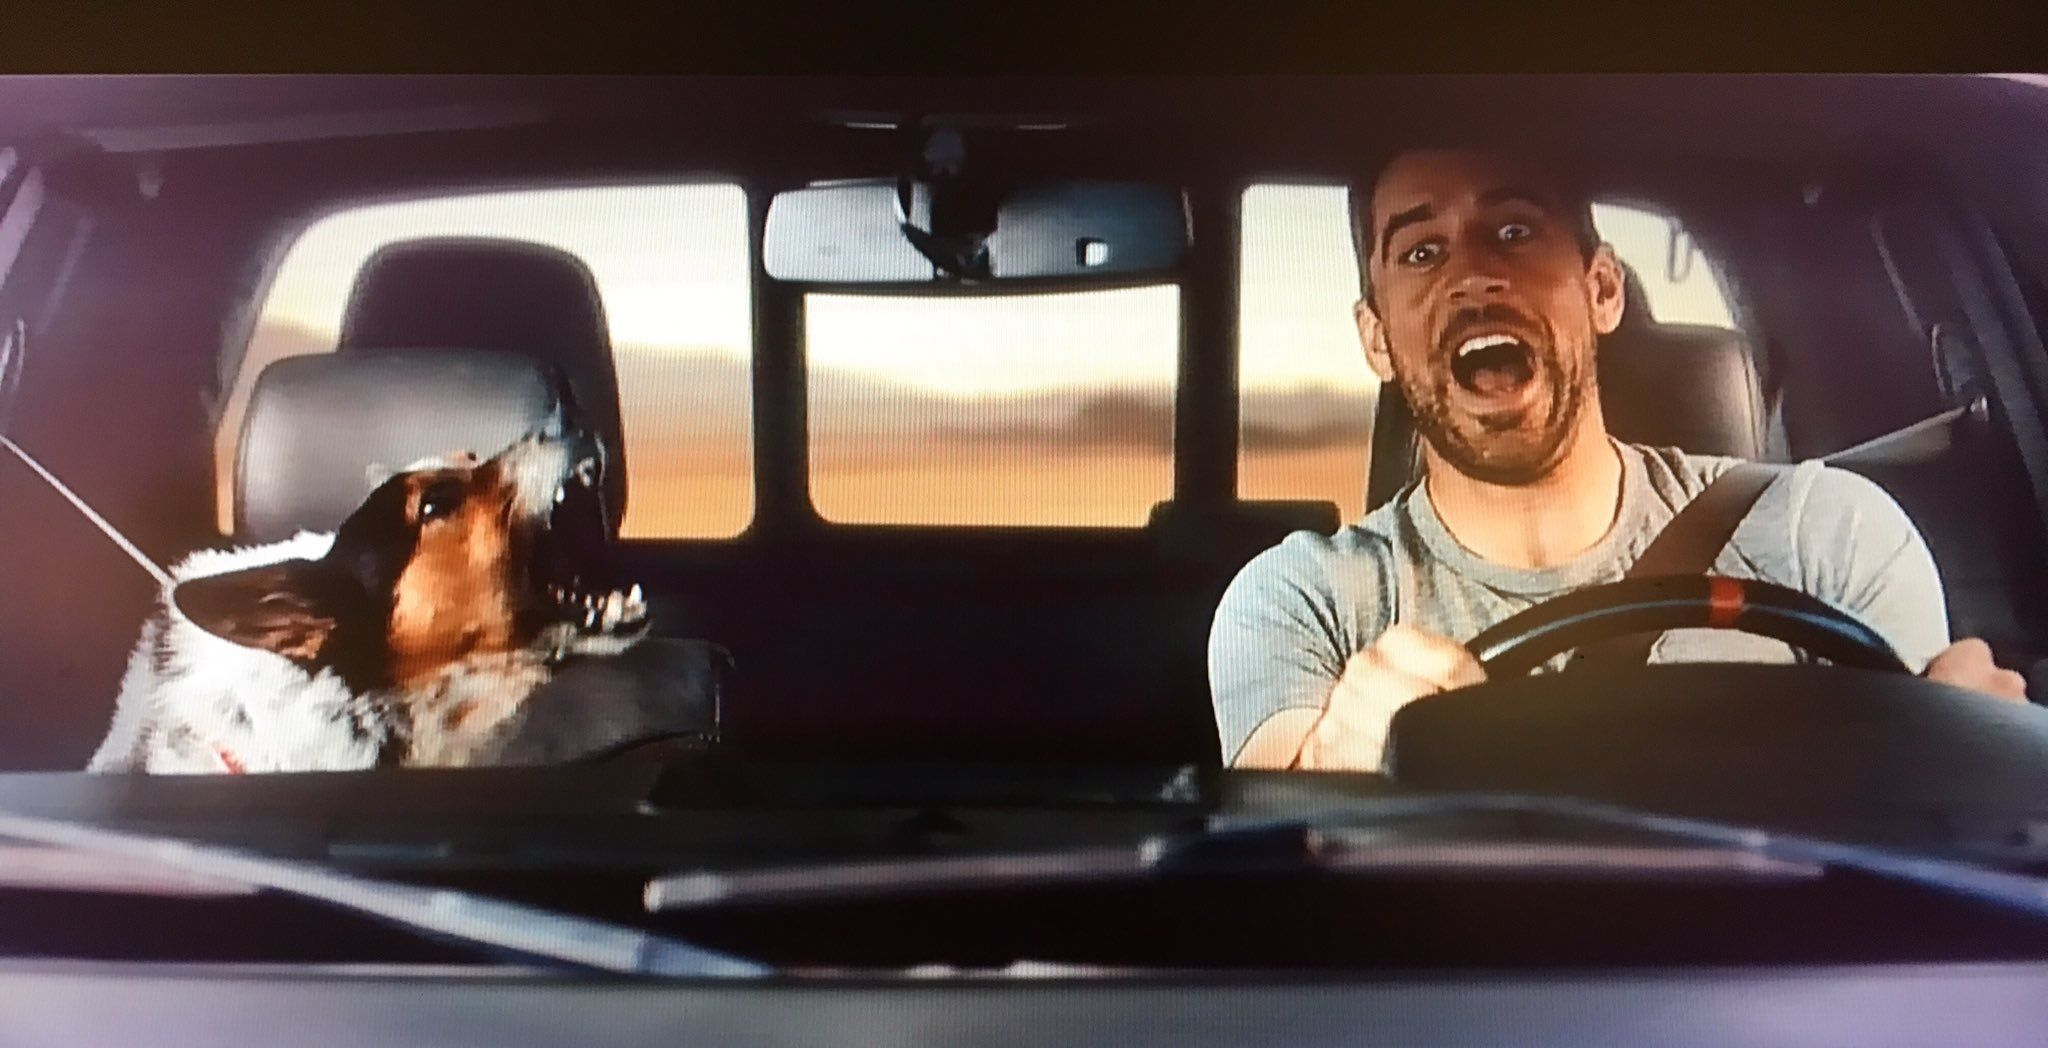 The State Farm Commercial Is So Cute I Laugh Every Time I See It Rodgers Green Bay Green Bay Packers Aaron Rodgers